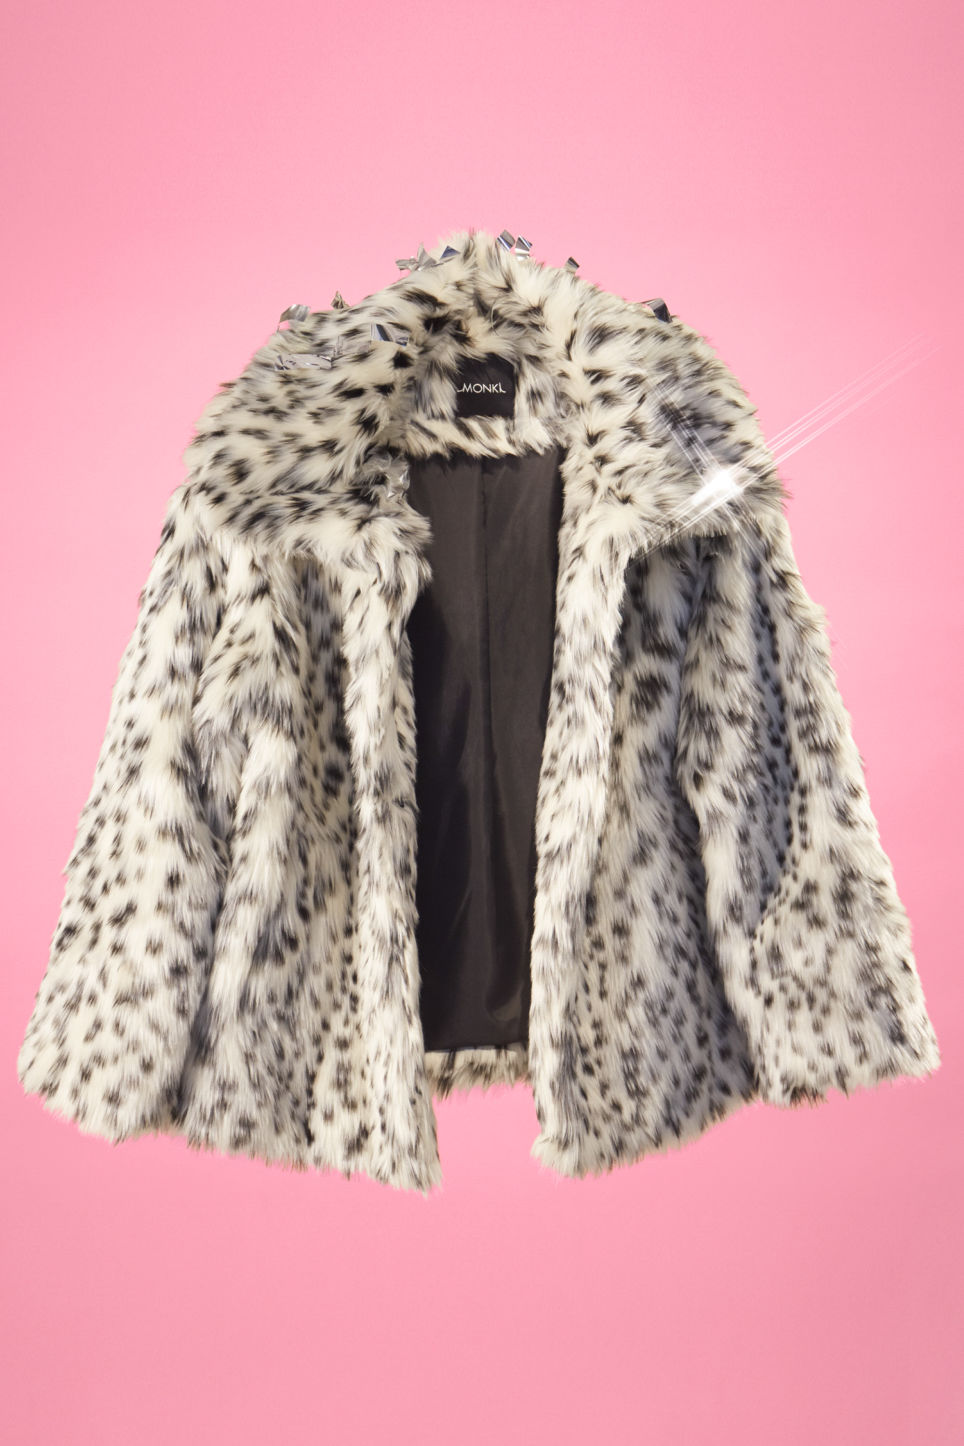 Detailed image of Monki faux fur jacket in white